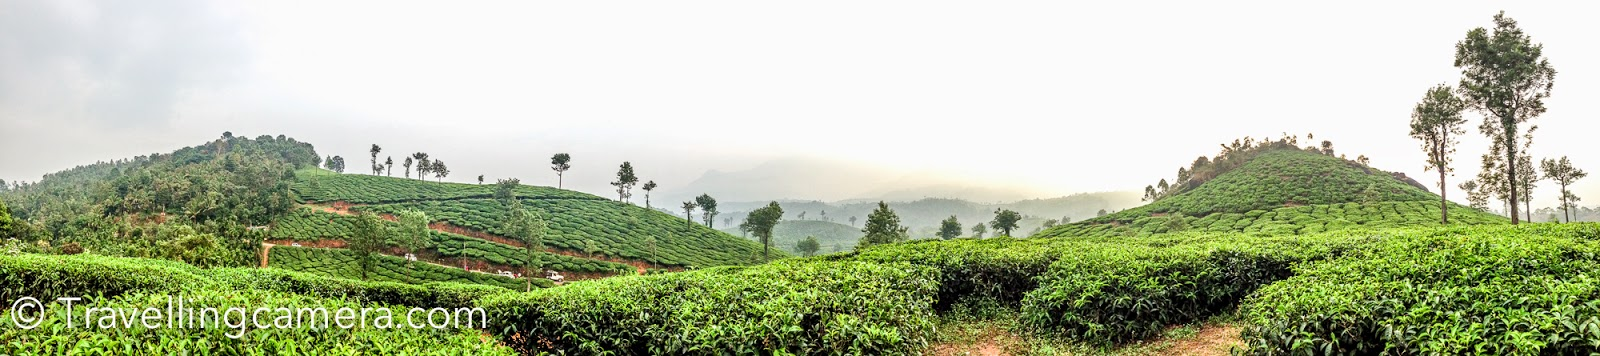 Today I thought of sharing all Panoramas created using iPhone, when we were in Wayanad region of Kerala. Enjoy these landscapes from Wayanad and Kannur. The very first photograph is clicked near Soochipara waterfalls.